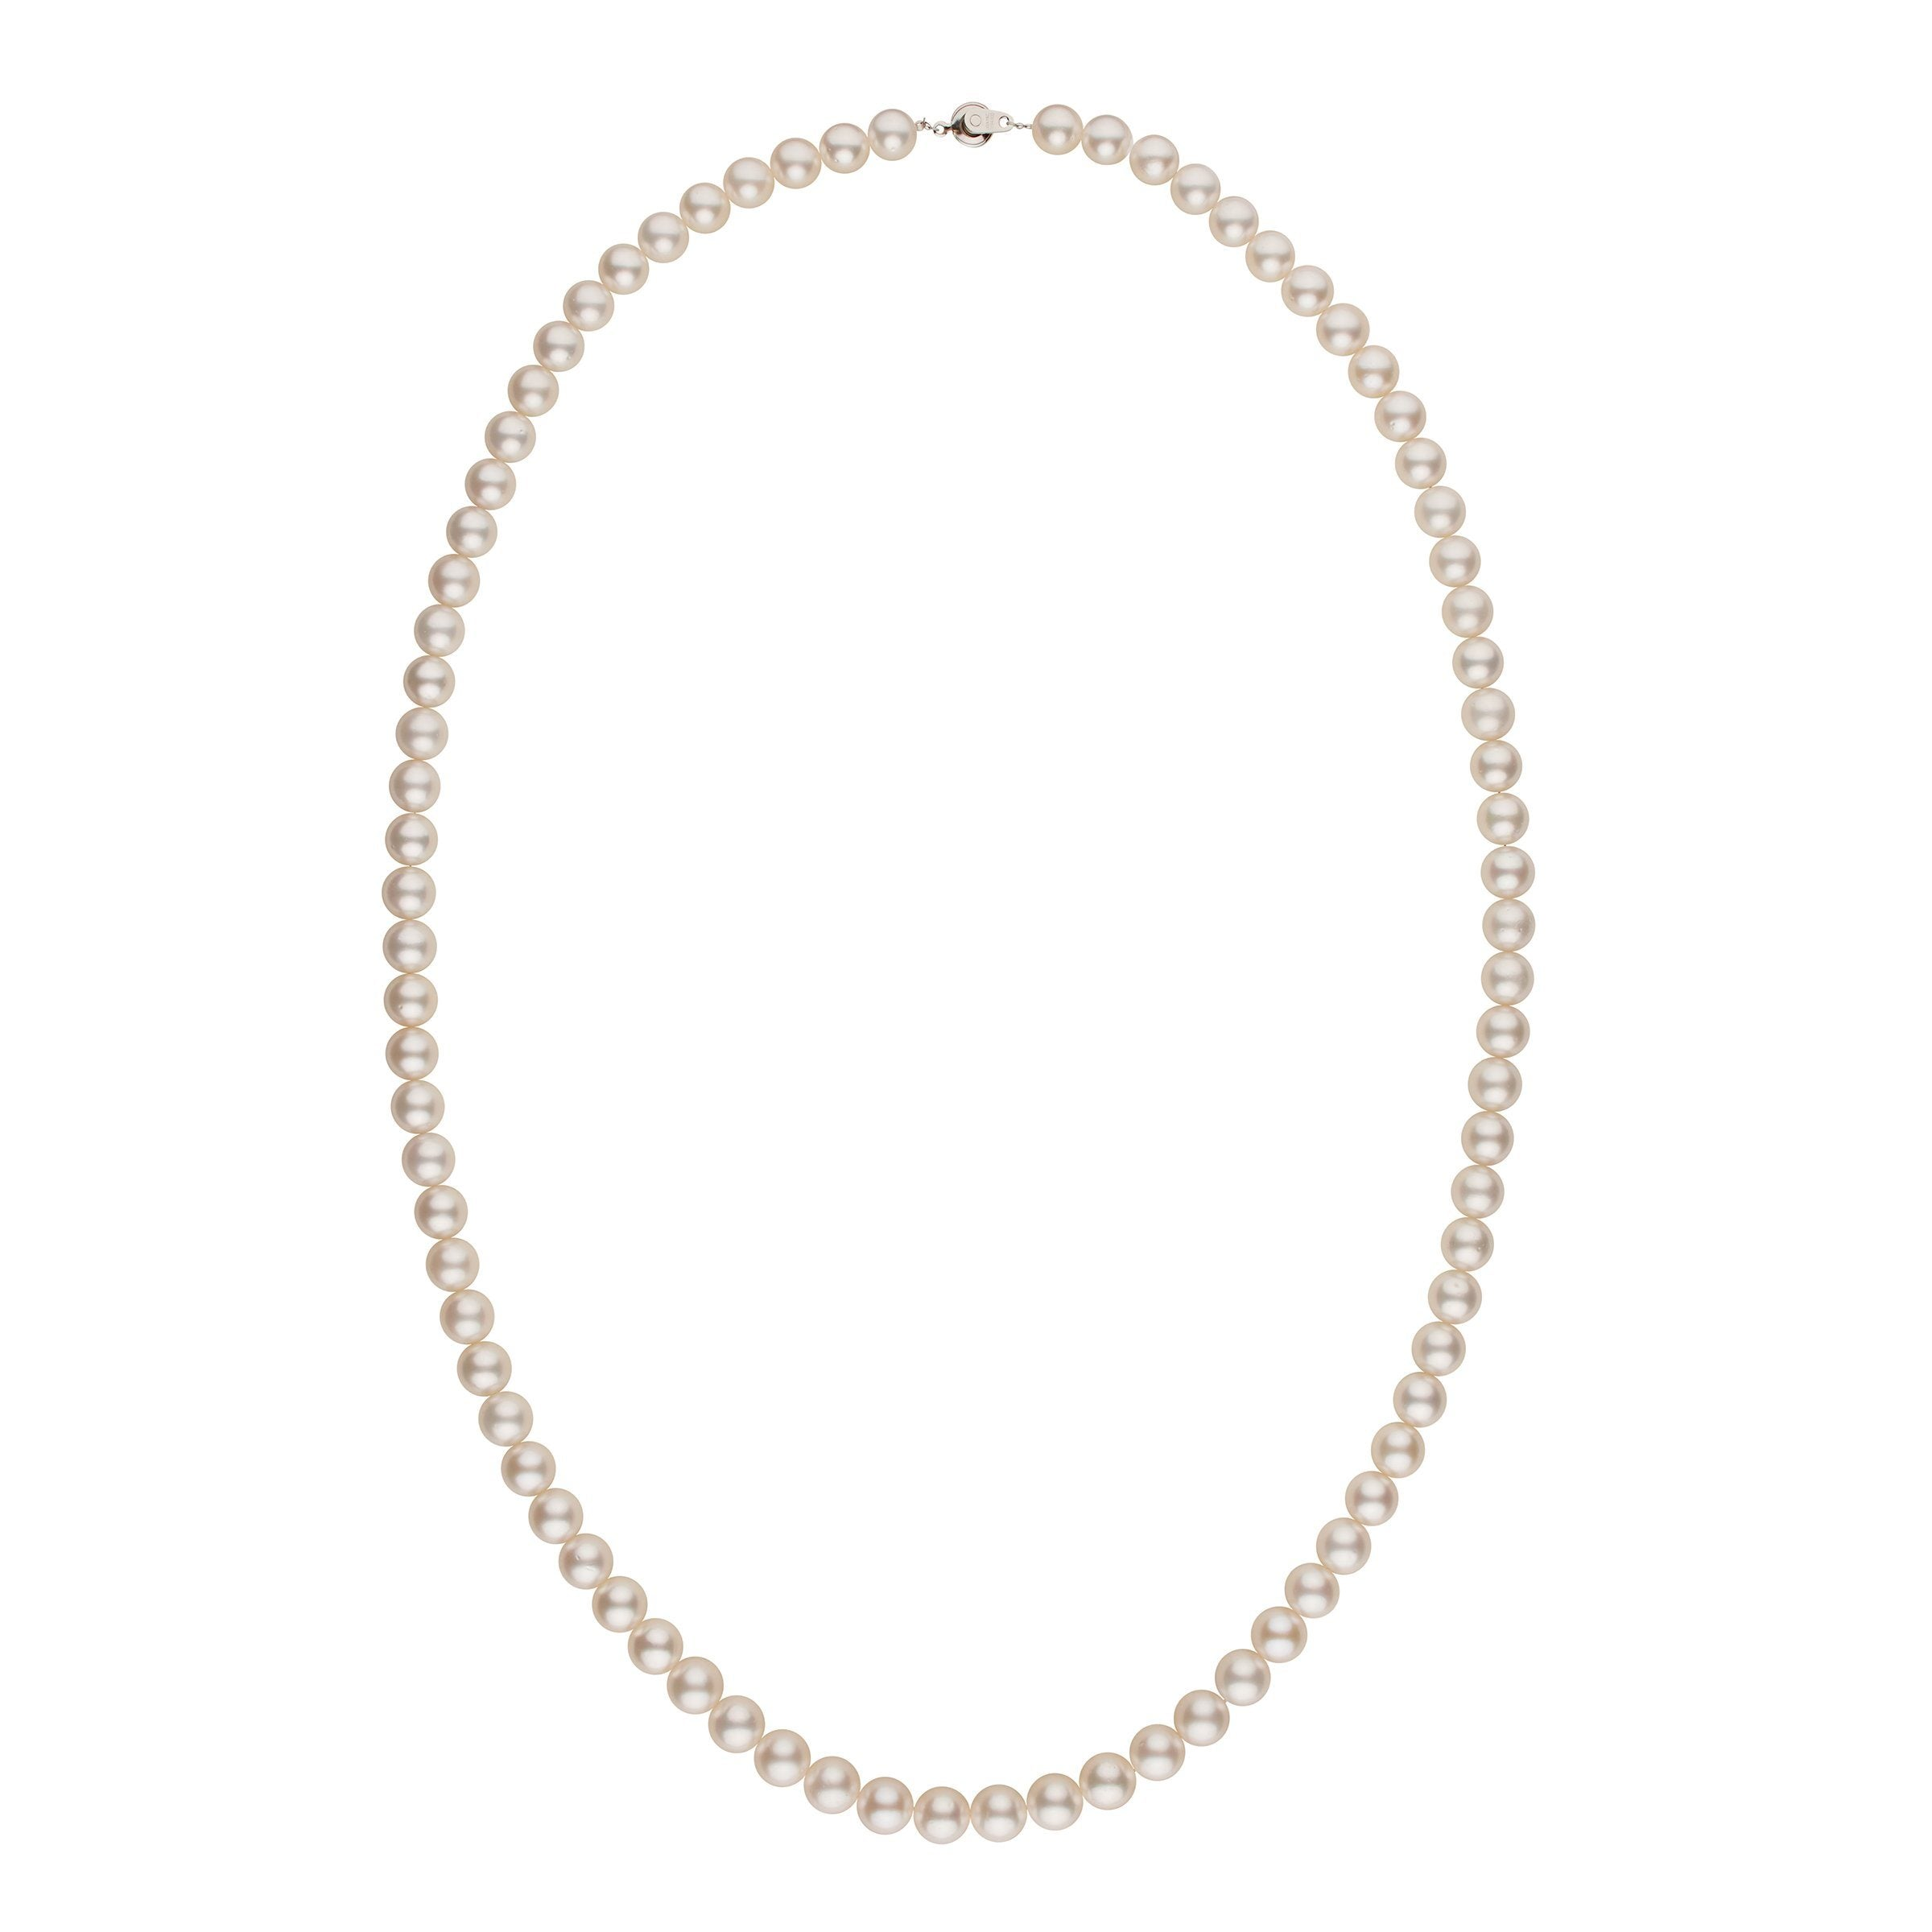 10.0-11.0 mm AA White South Sea Round Pearl Necklace - 36 Inches